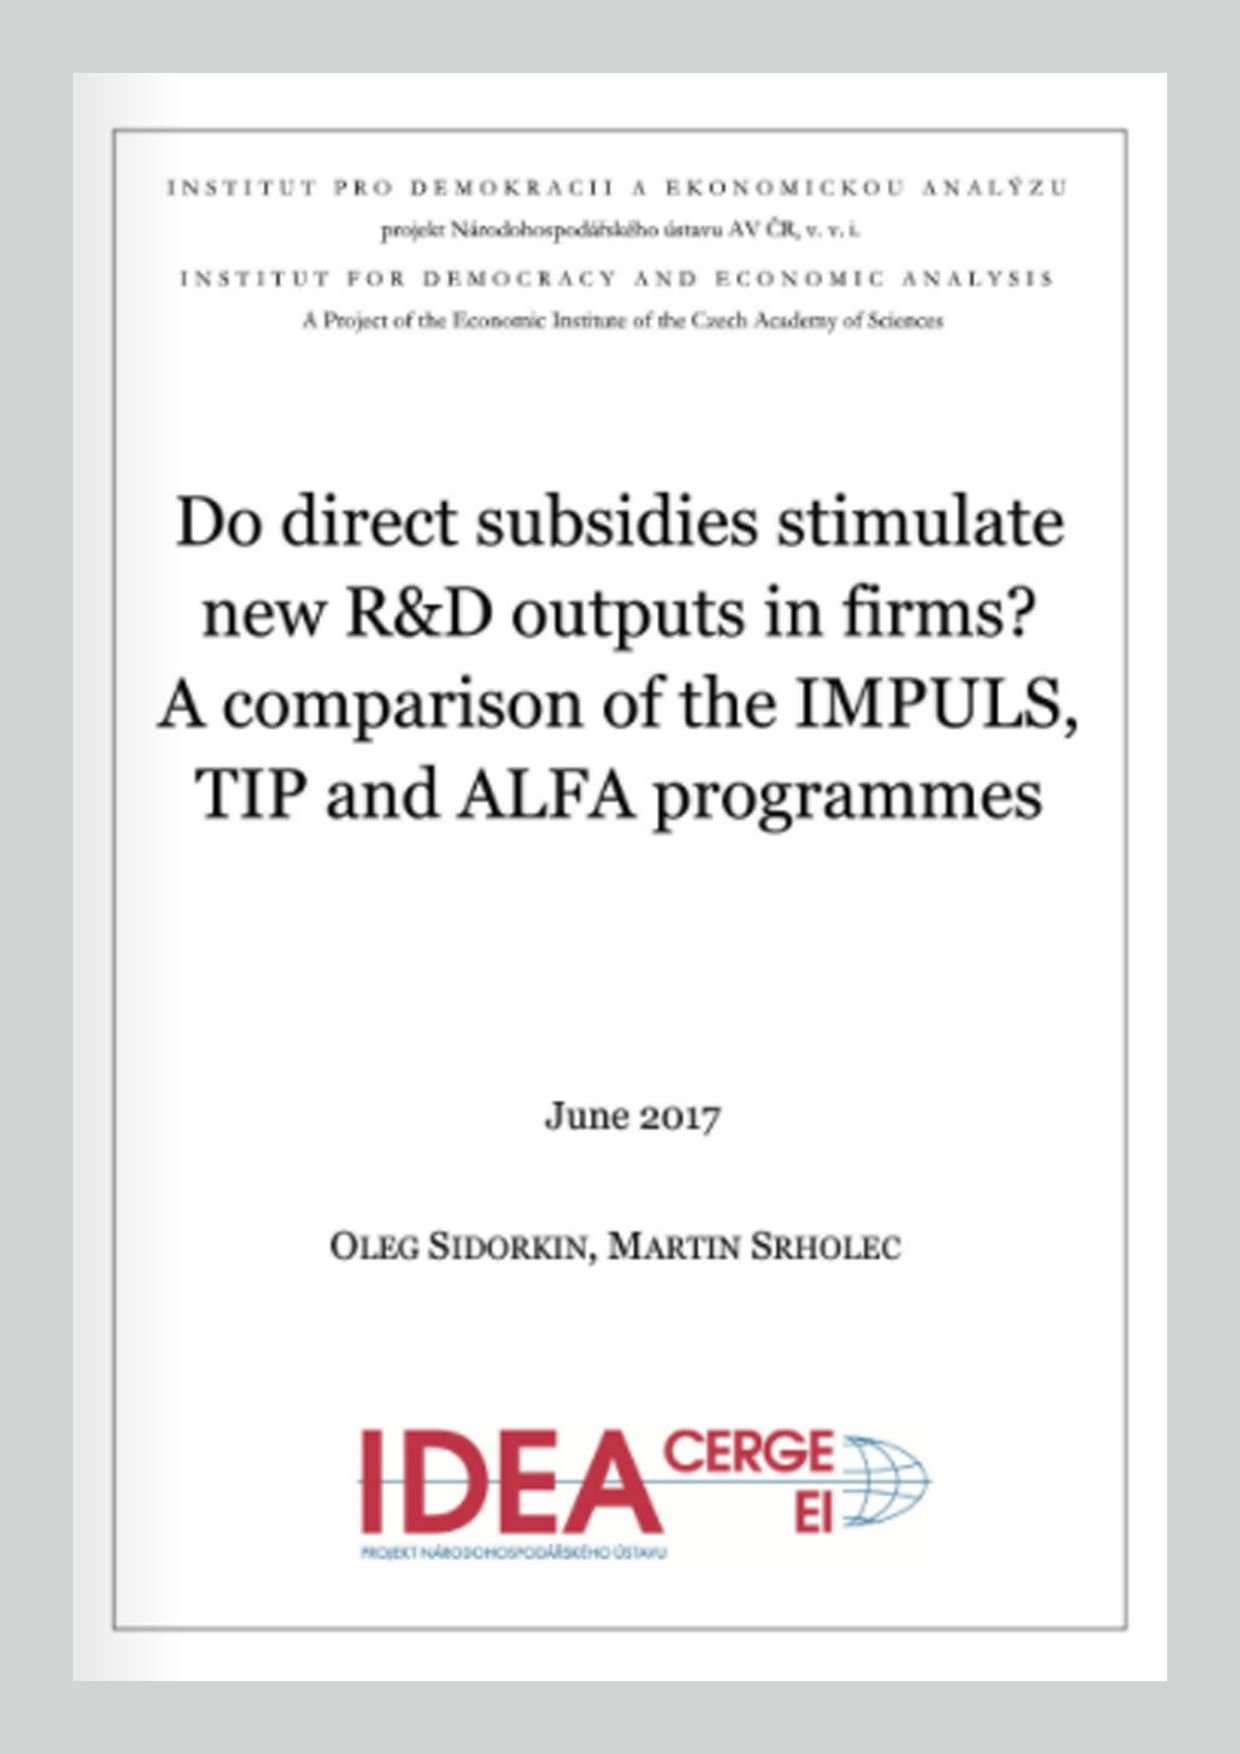 Do direct subsidies stimulate new R&D output in firms? A comparison of IMPULS, TIP and ALFA programmes